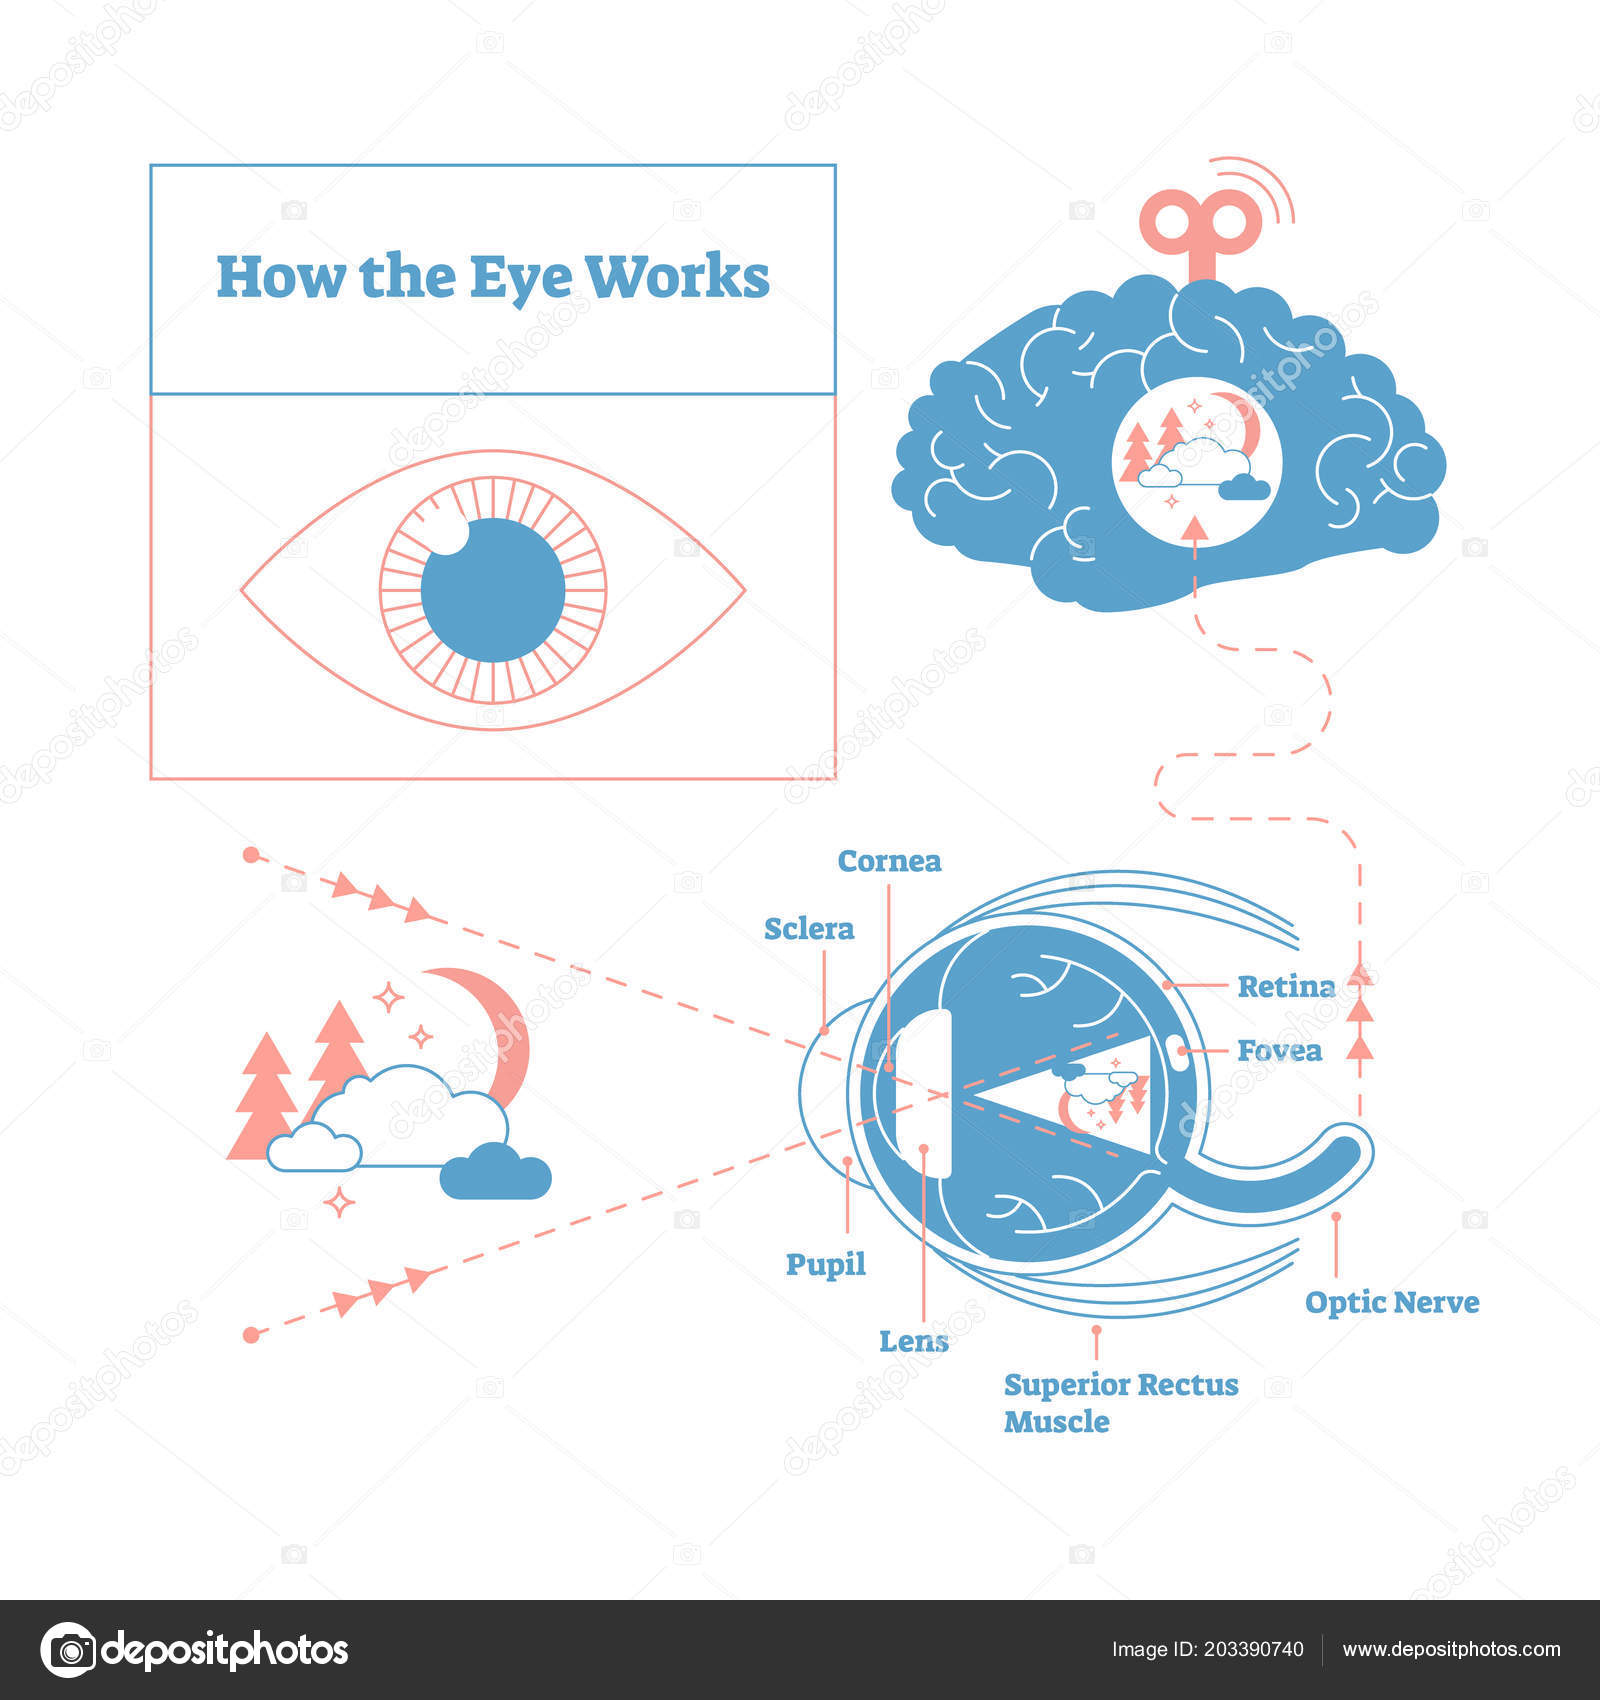 How the eye works medical scheme poster elegant and minimal vector how the eye works medical scheme poster elegant and minimal vector illustration eye brain labeled structure diagram stylized and artistic medical ccuart Images